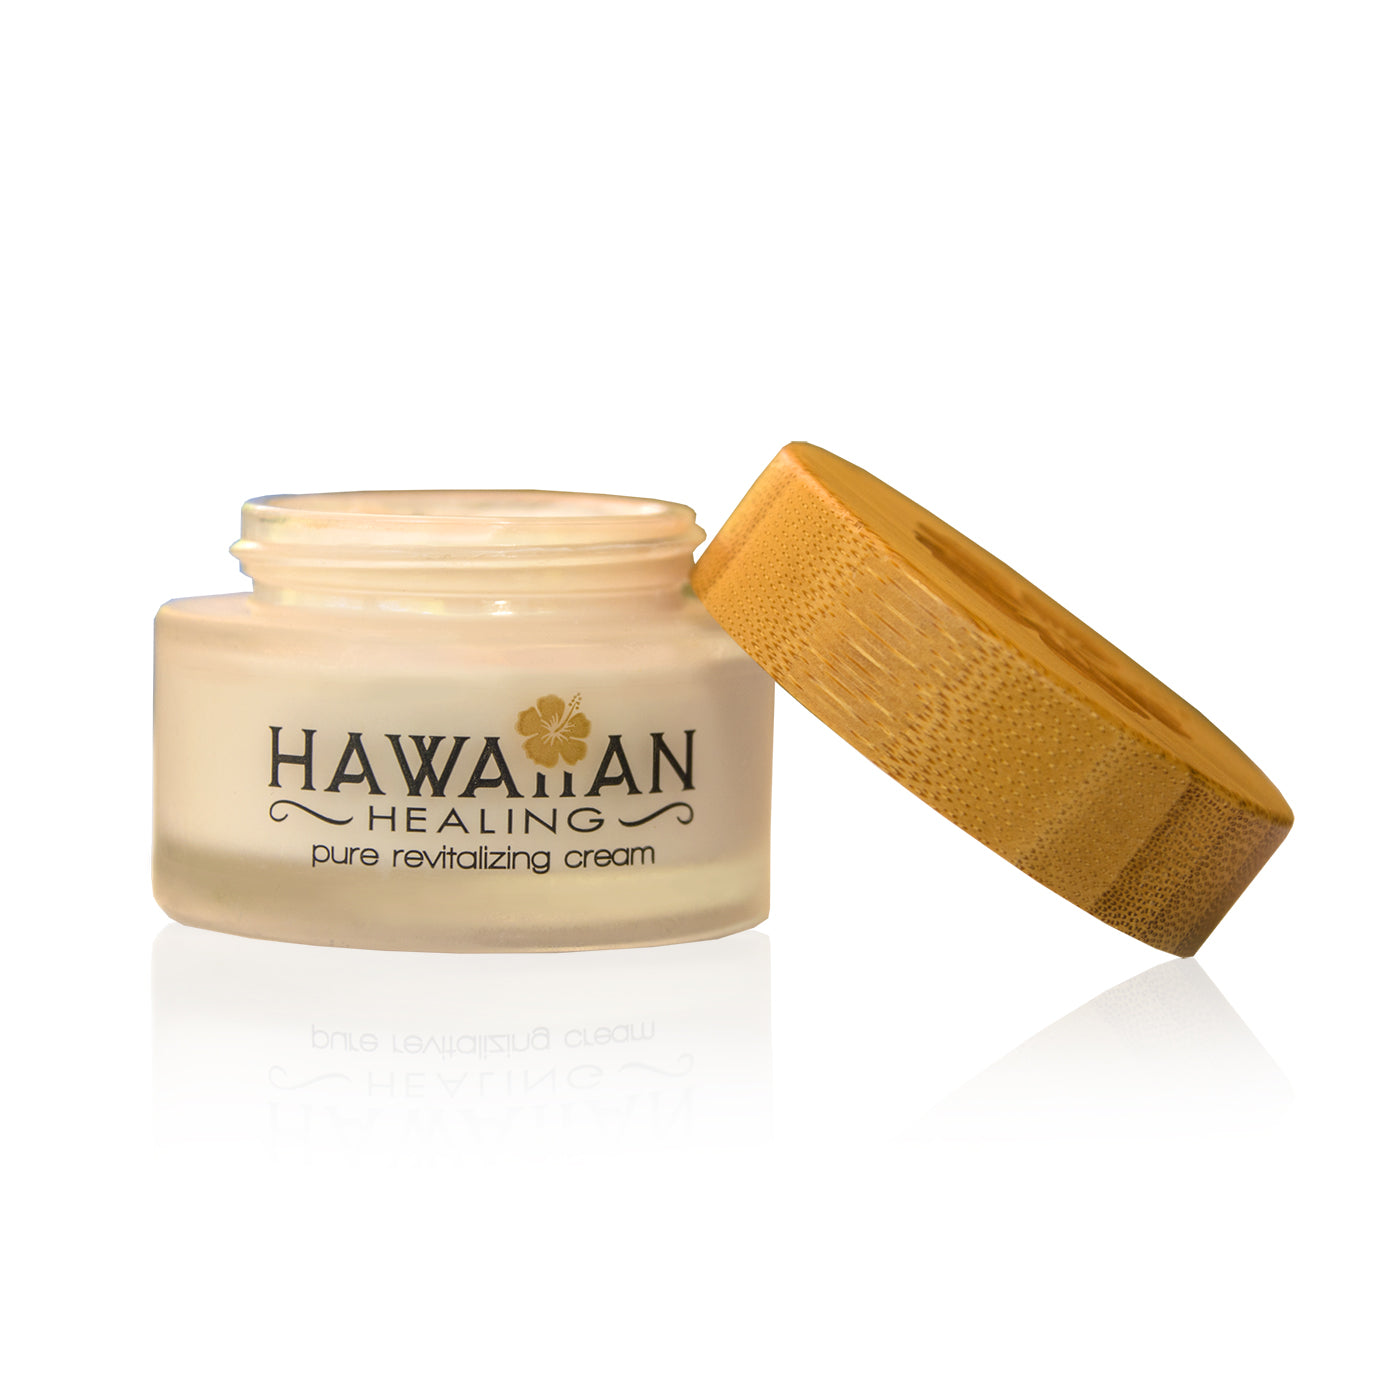 Hawaiian Pure Revitalizing Cream (50g Jar) - Hawaiian Healing